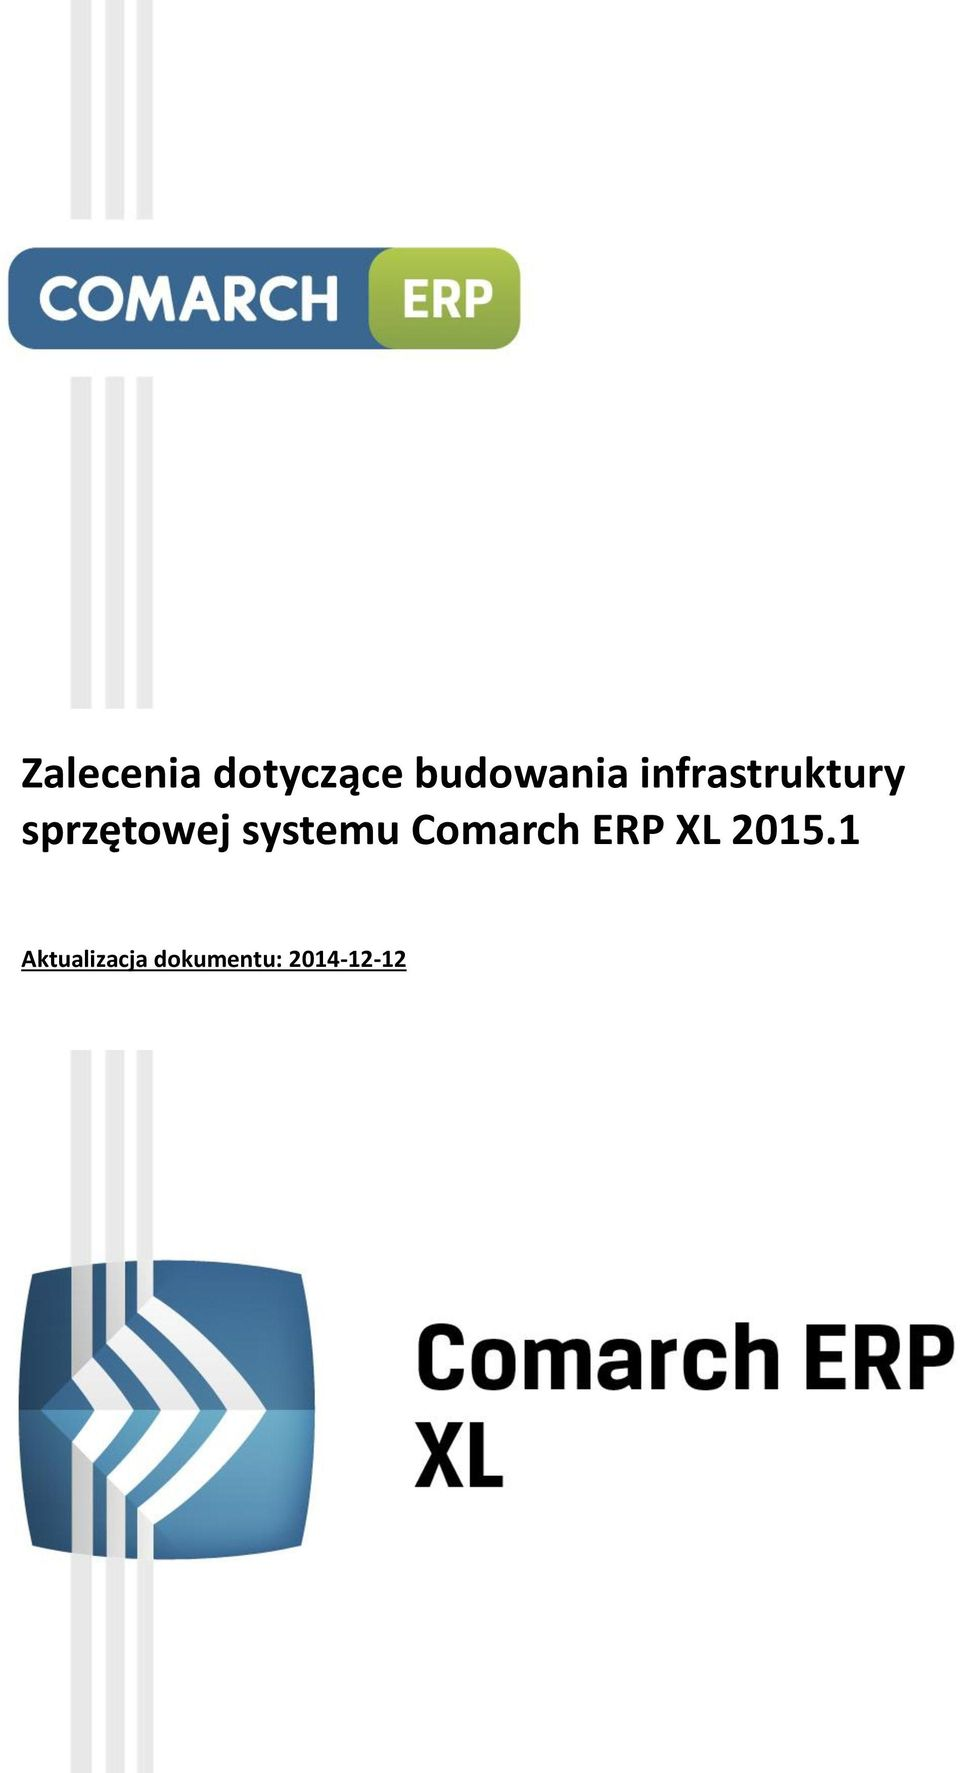 systemu Comarch ERP XL 2015.